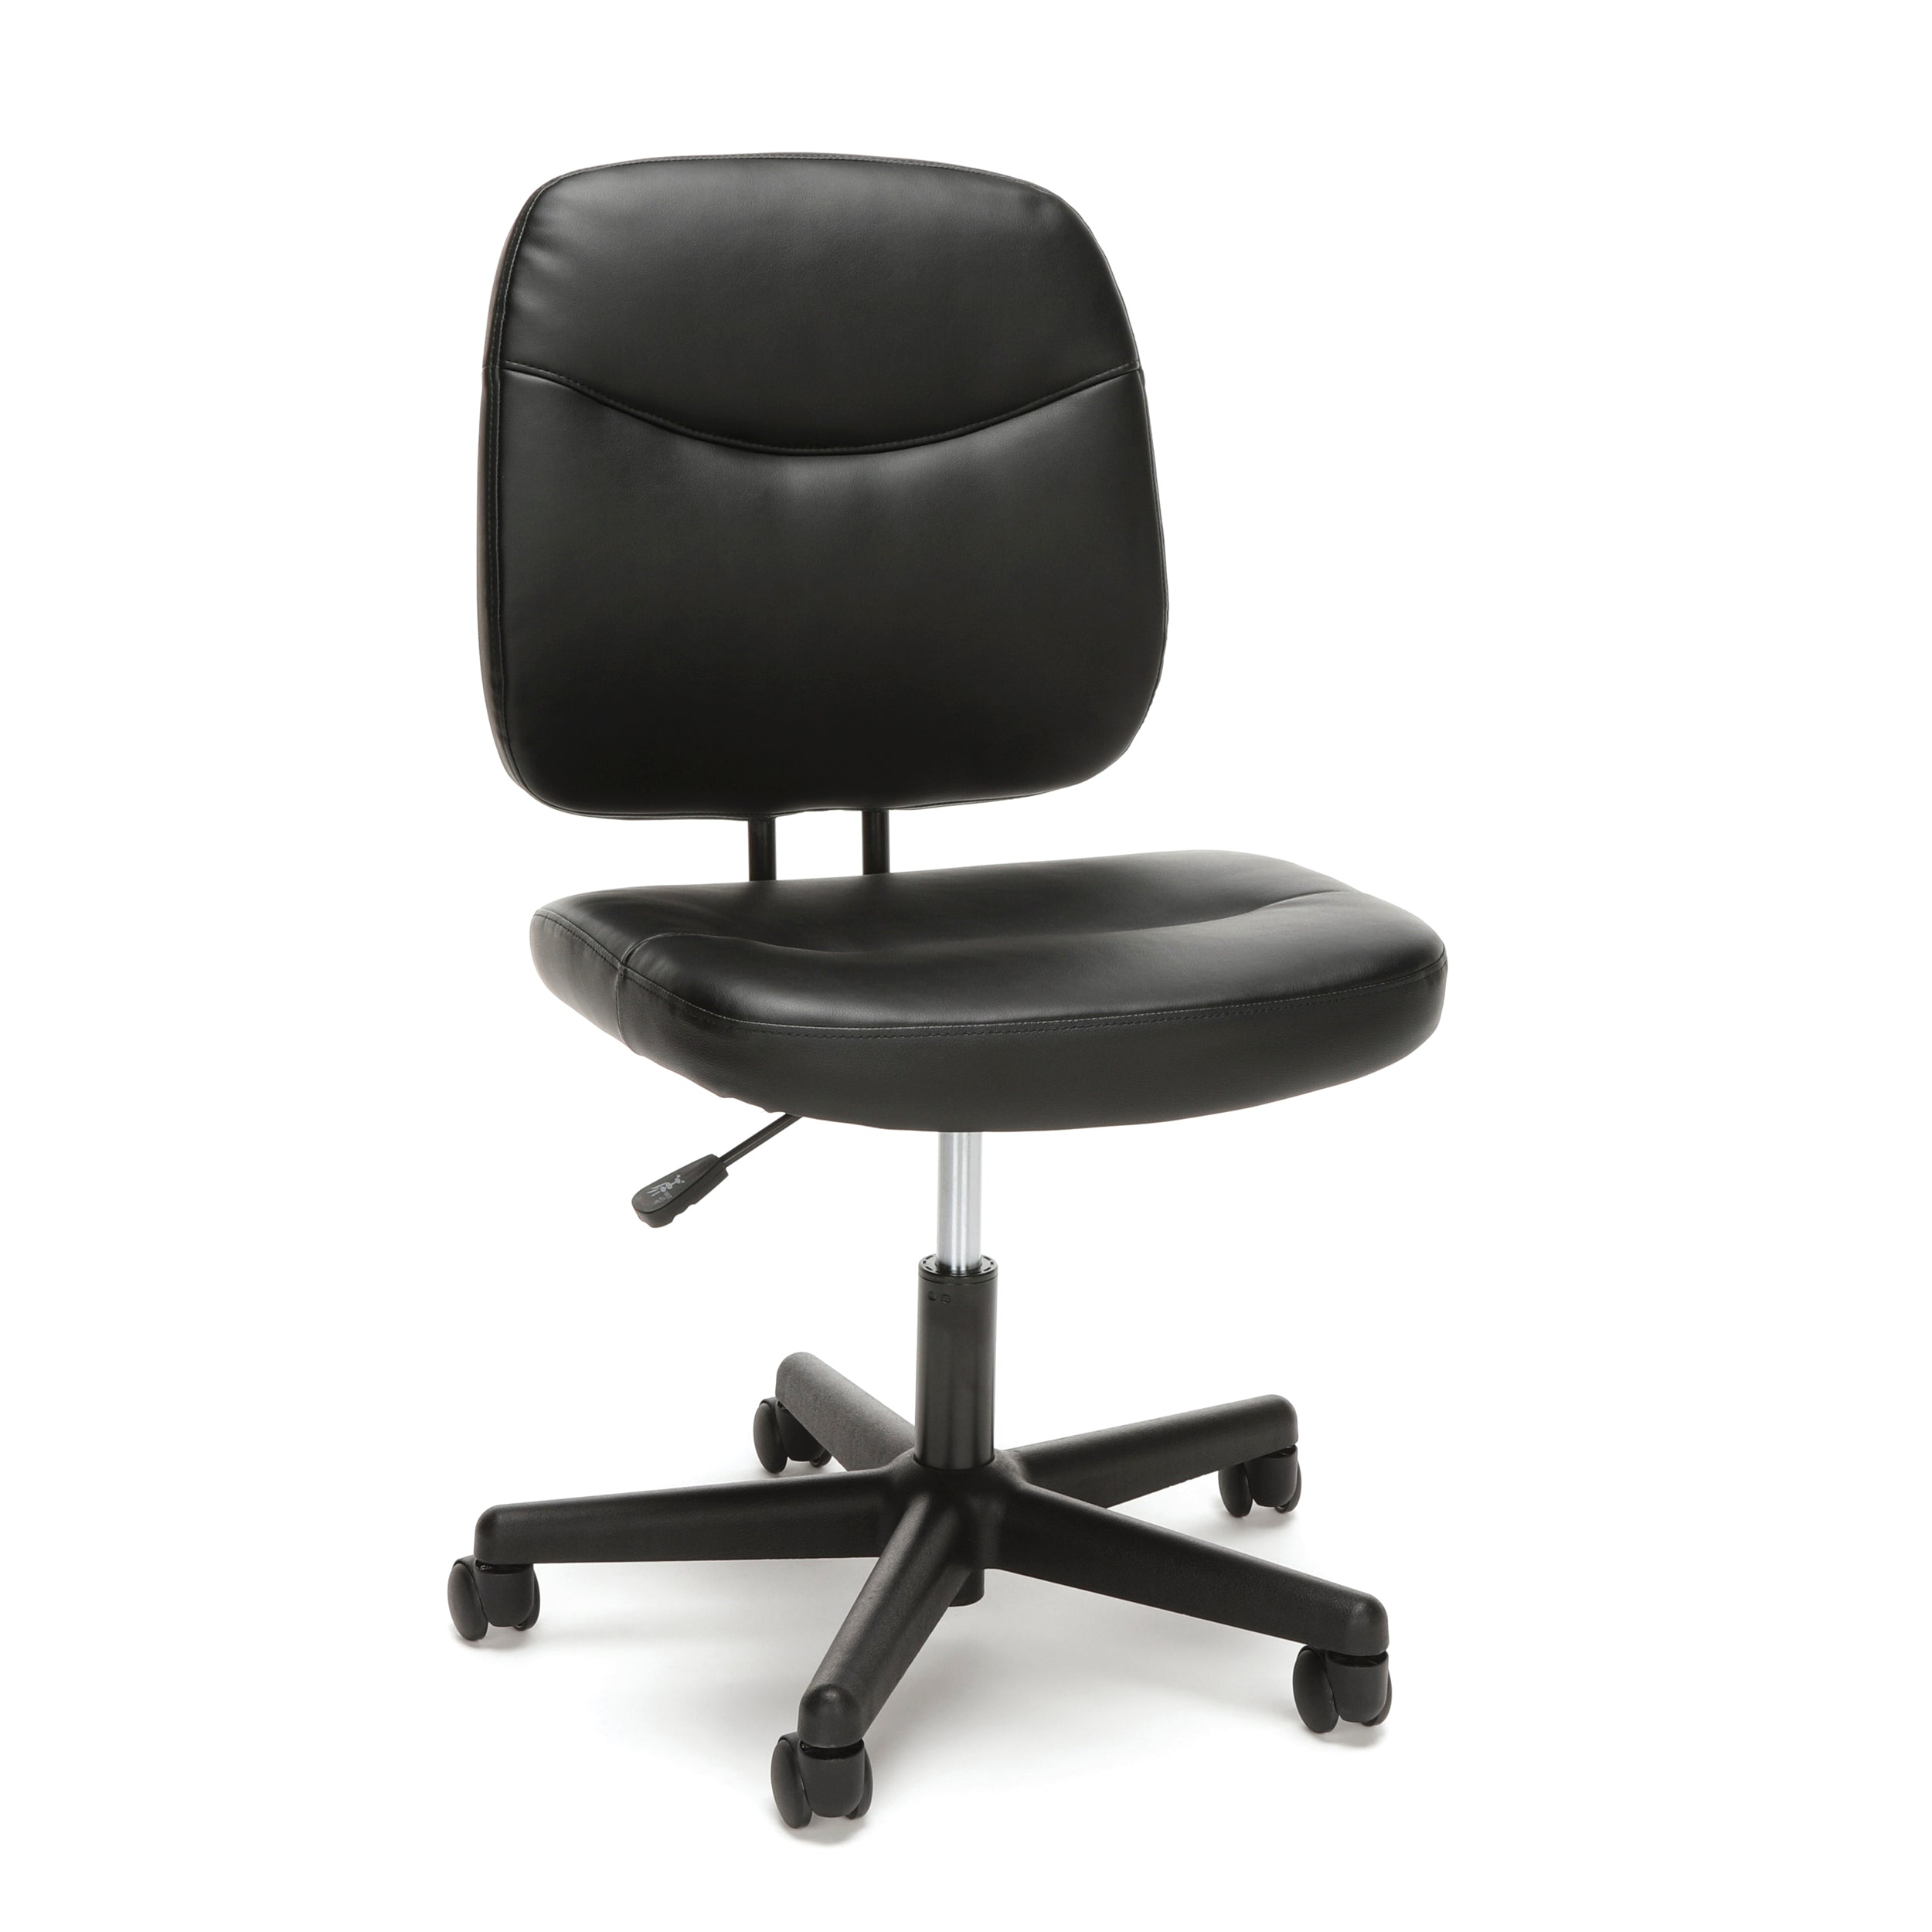 OFM Essentials Collection ESS-6005 Armless Leather Desk Chair Black